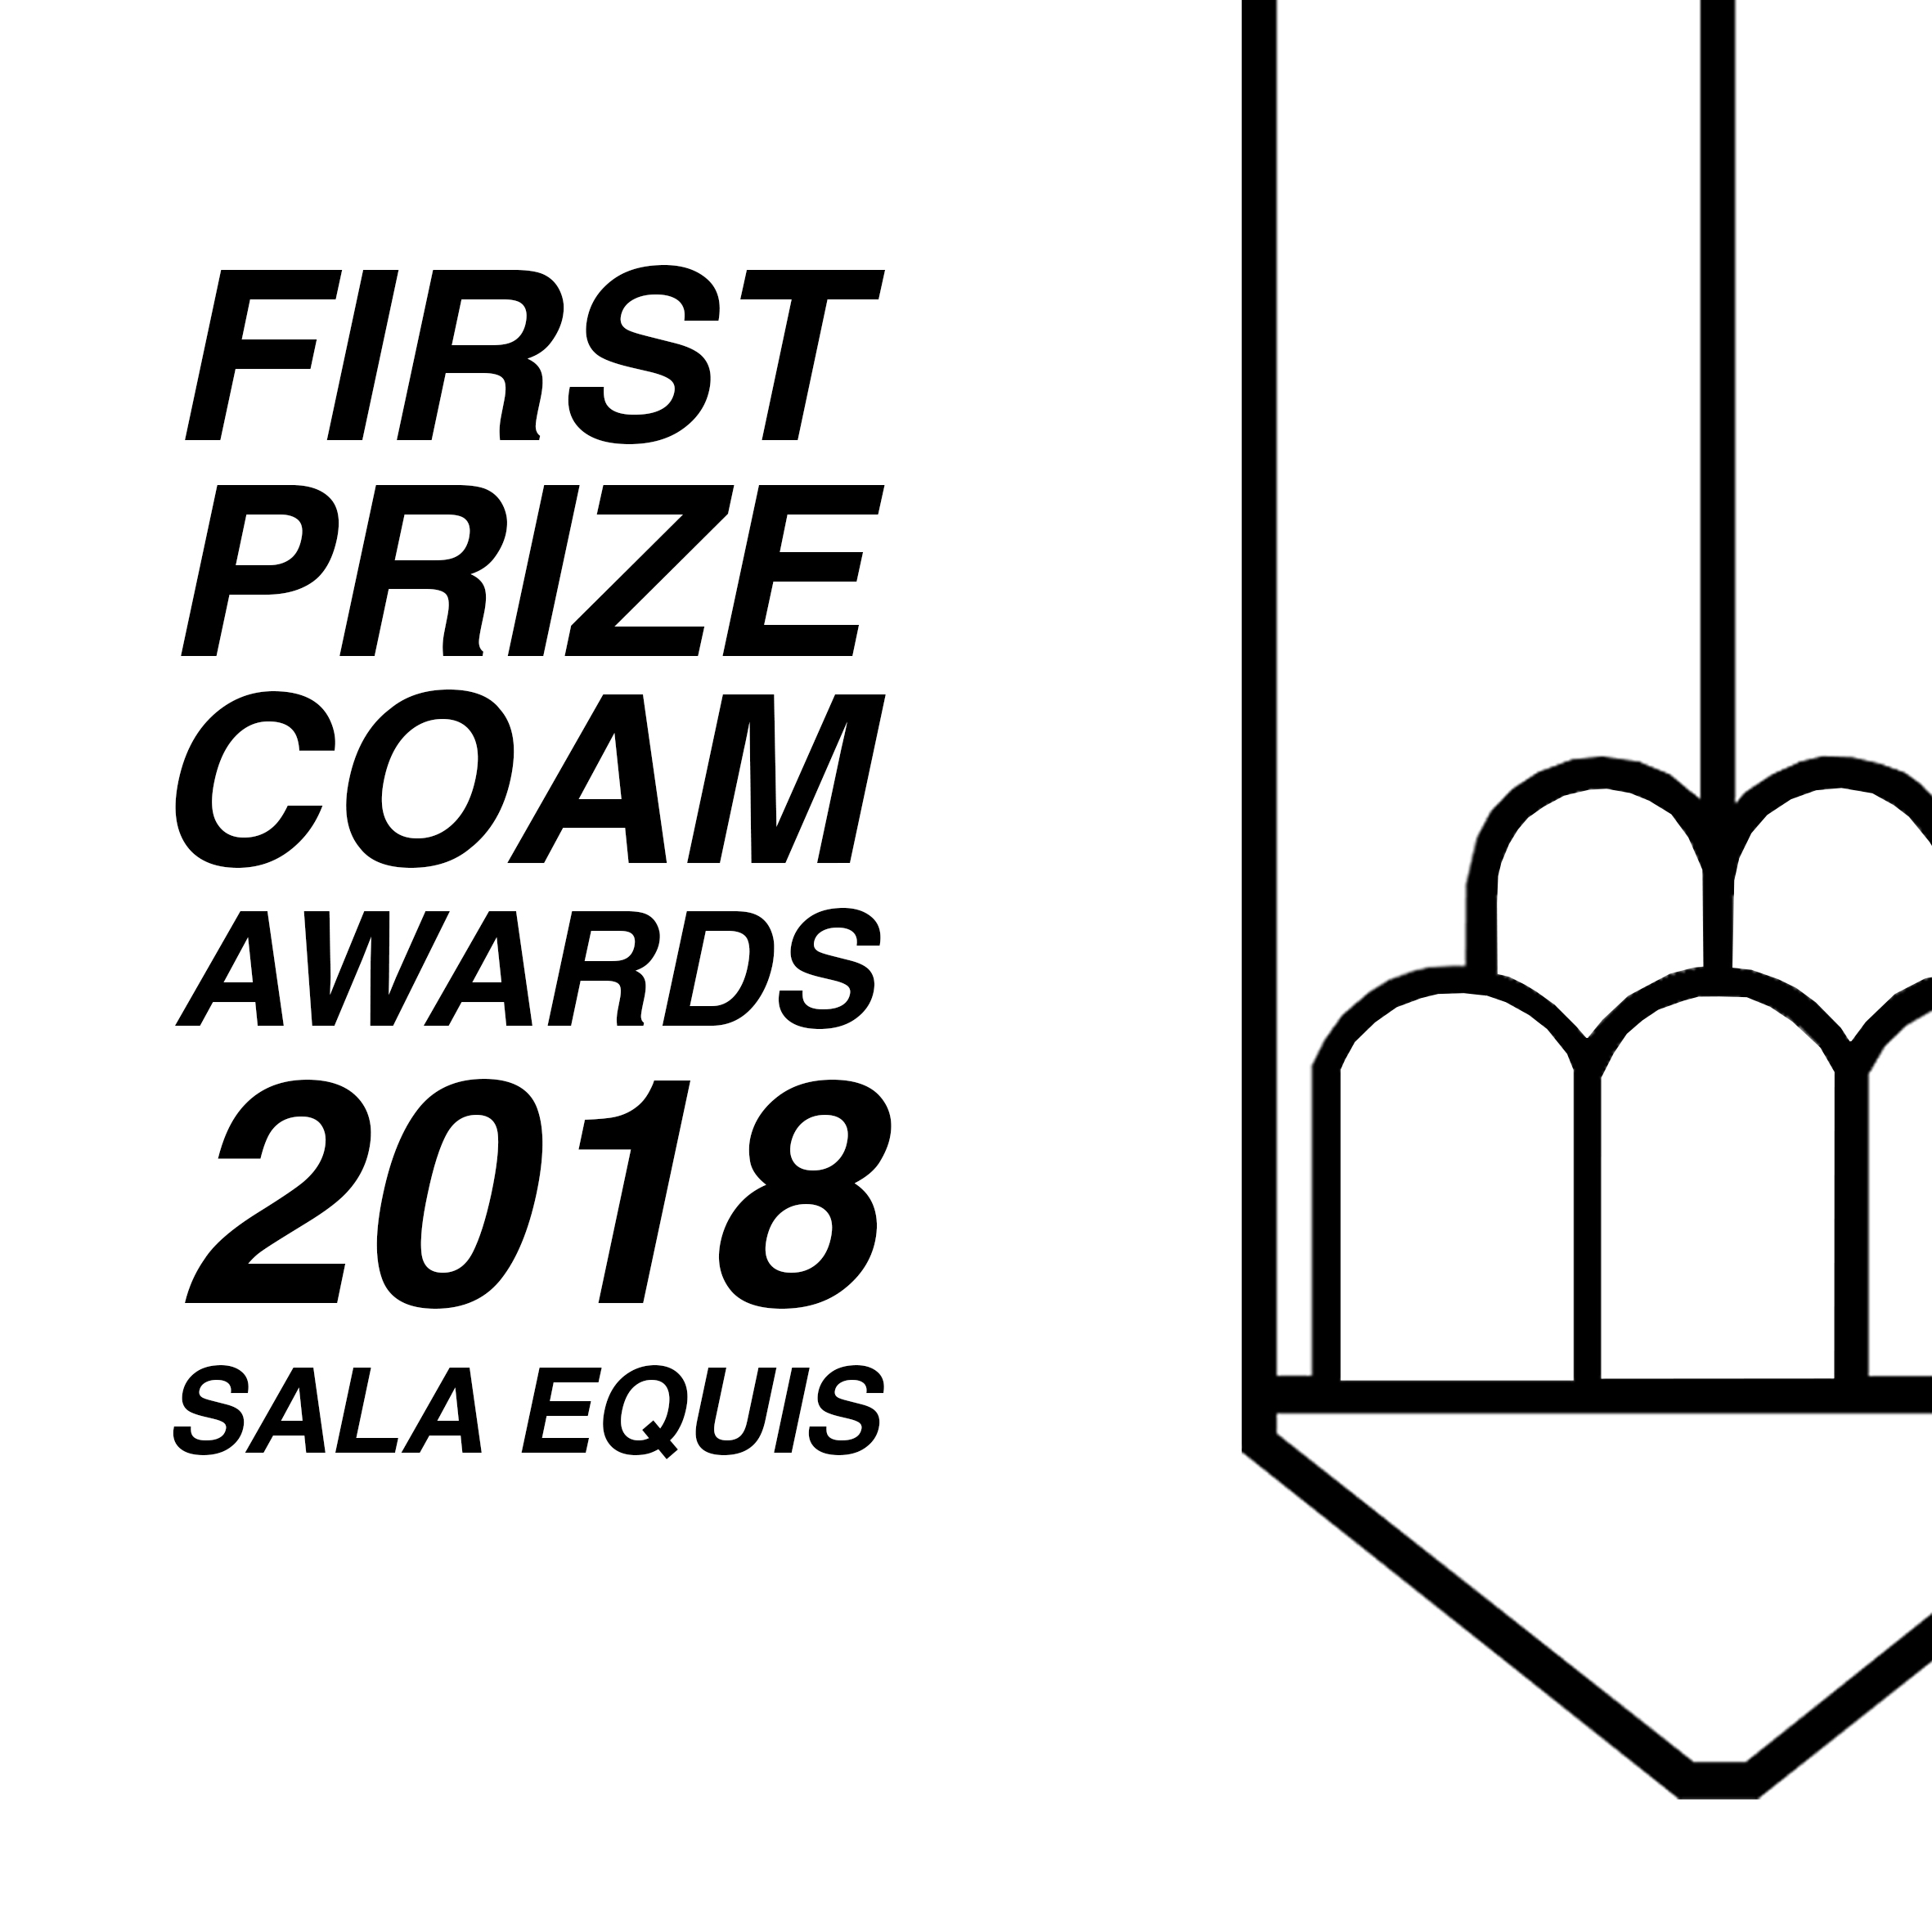 Plantea Estudio winner first price COAM awards